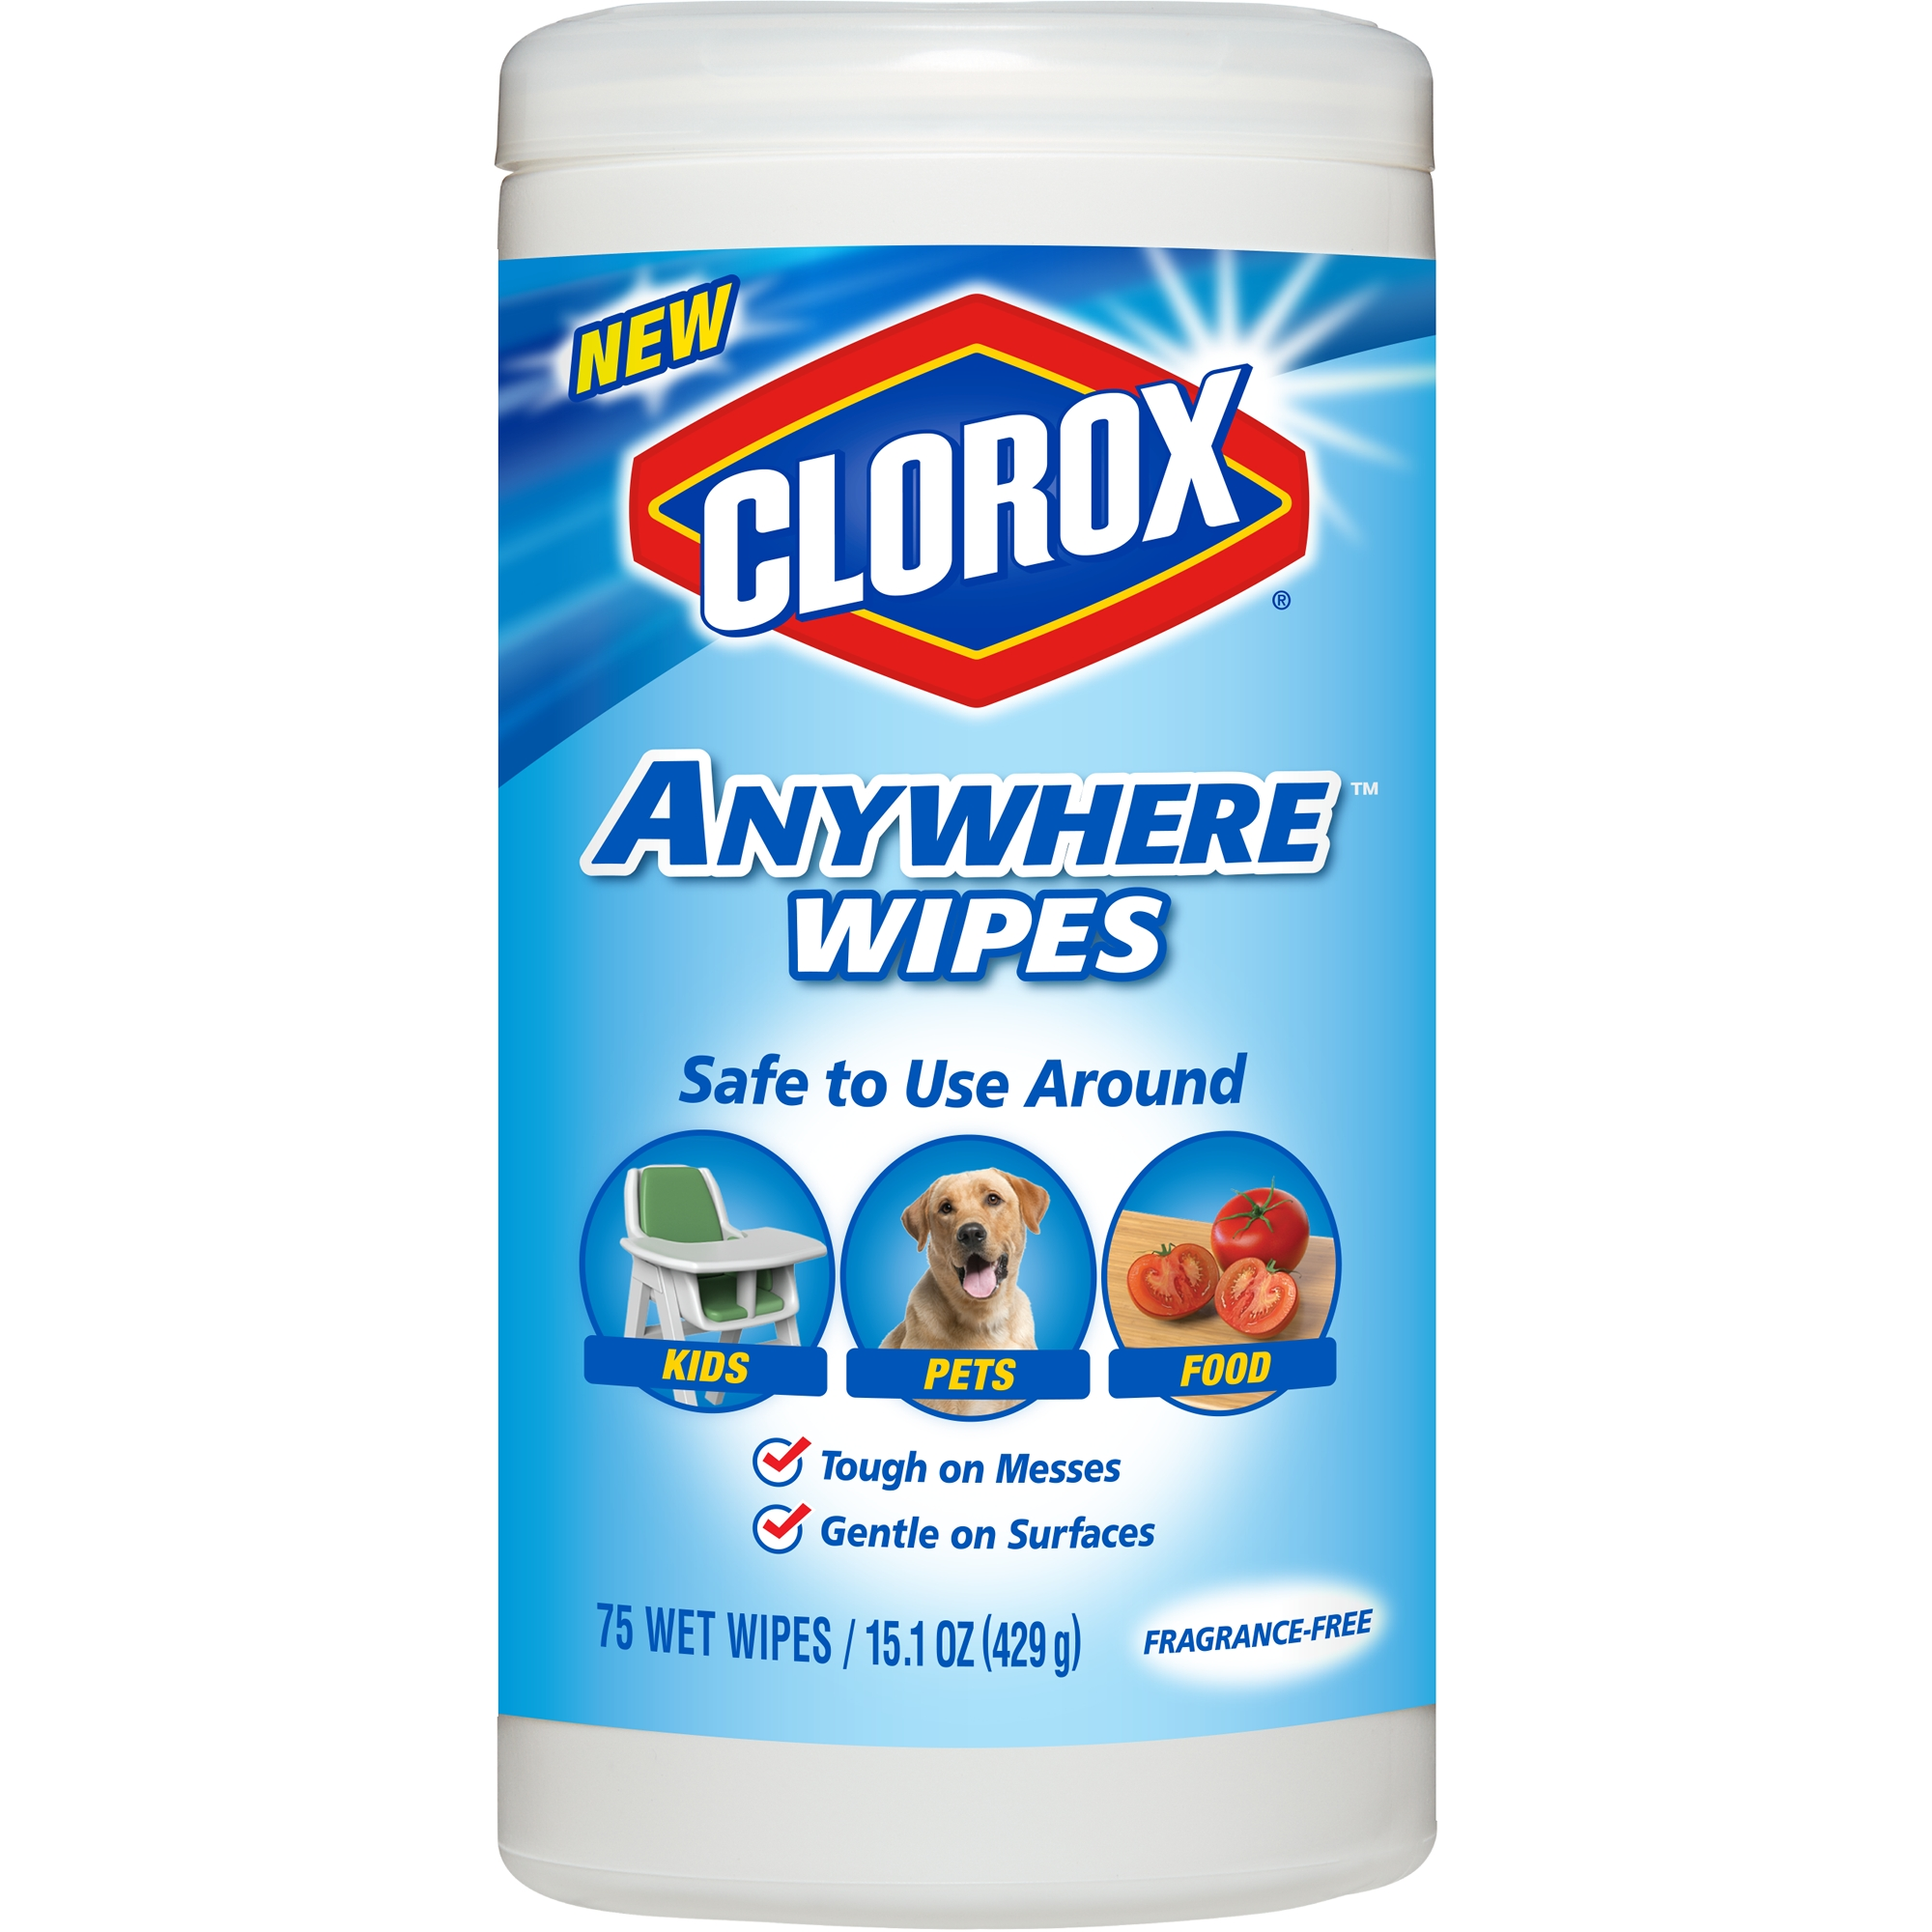 Clorox Anywhere Wipes, Bleach Free Cleaning Wipes - Fragrance-Free, 75 ct